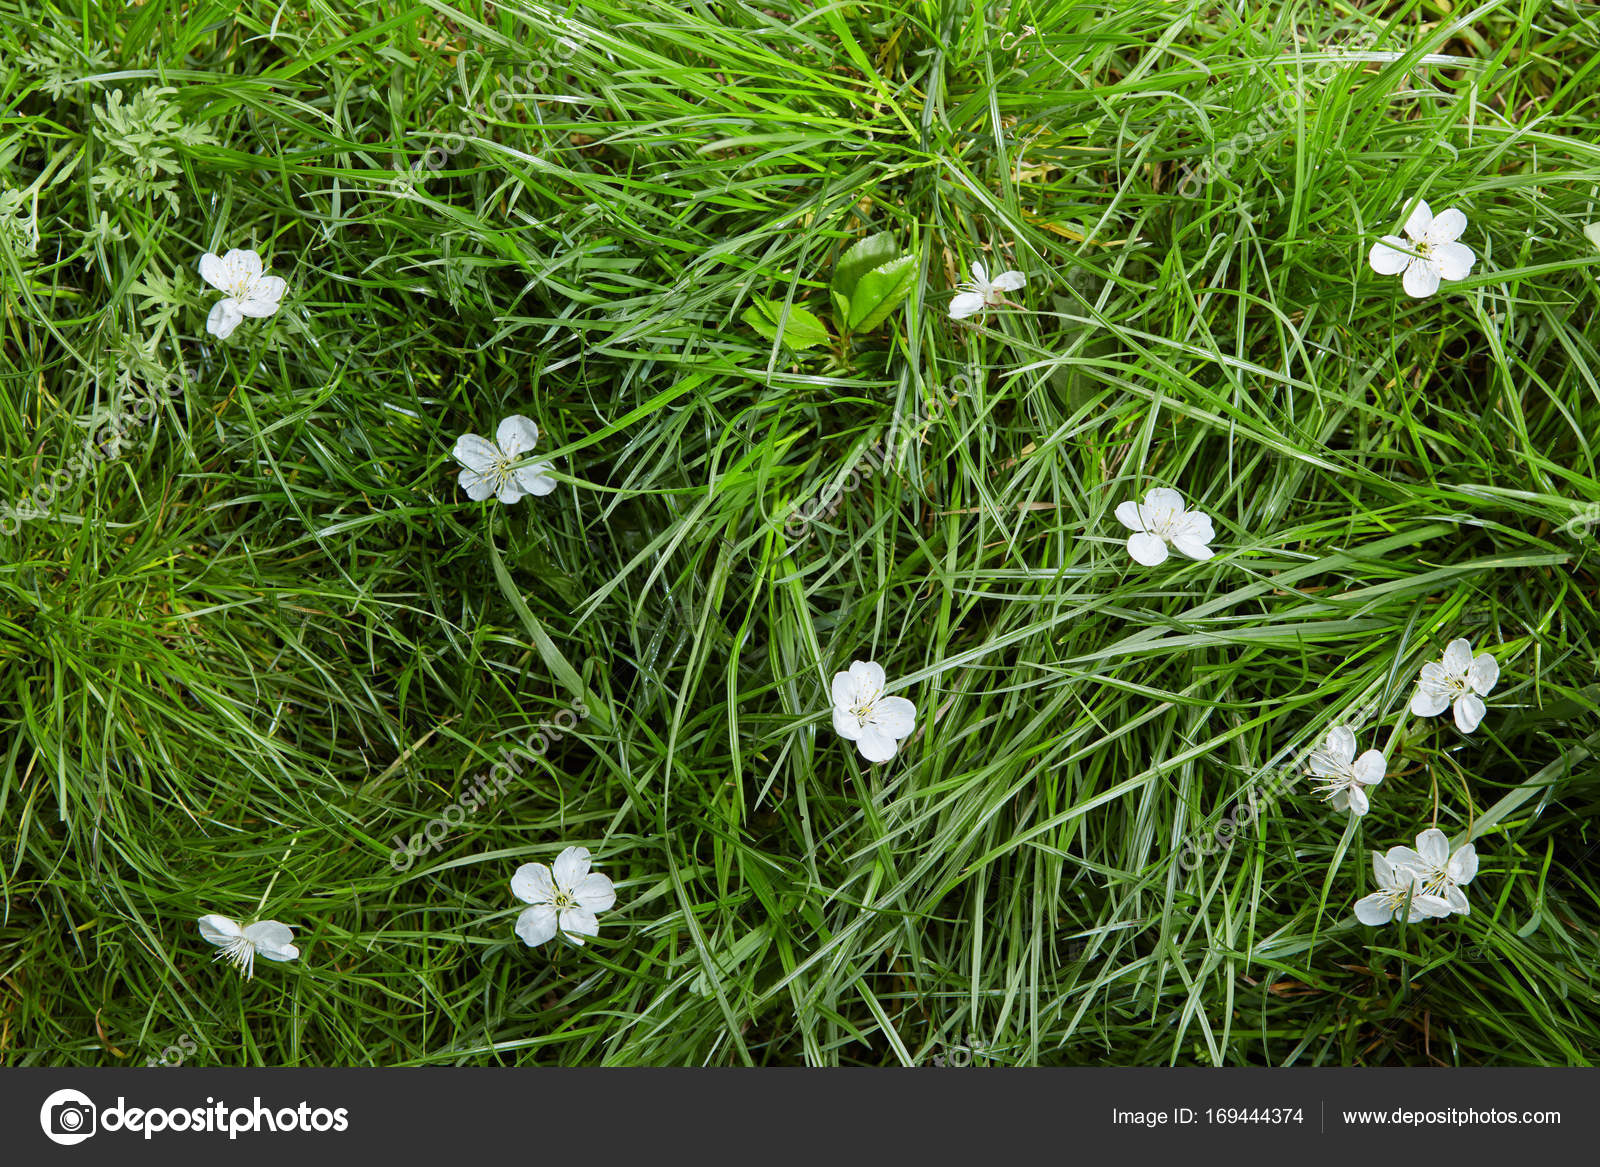 Small flowers in grass stock photo artjazz 169444374 white small flowers growing in fresh green grass in the meadow photo by artjazz mightylinksfo